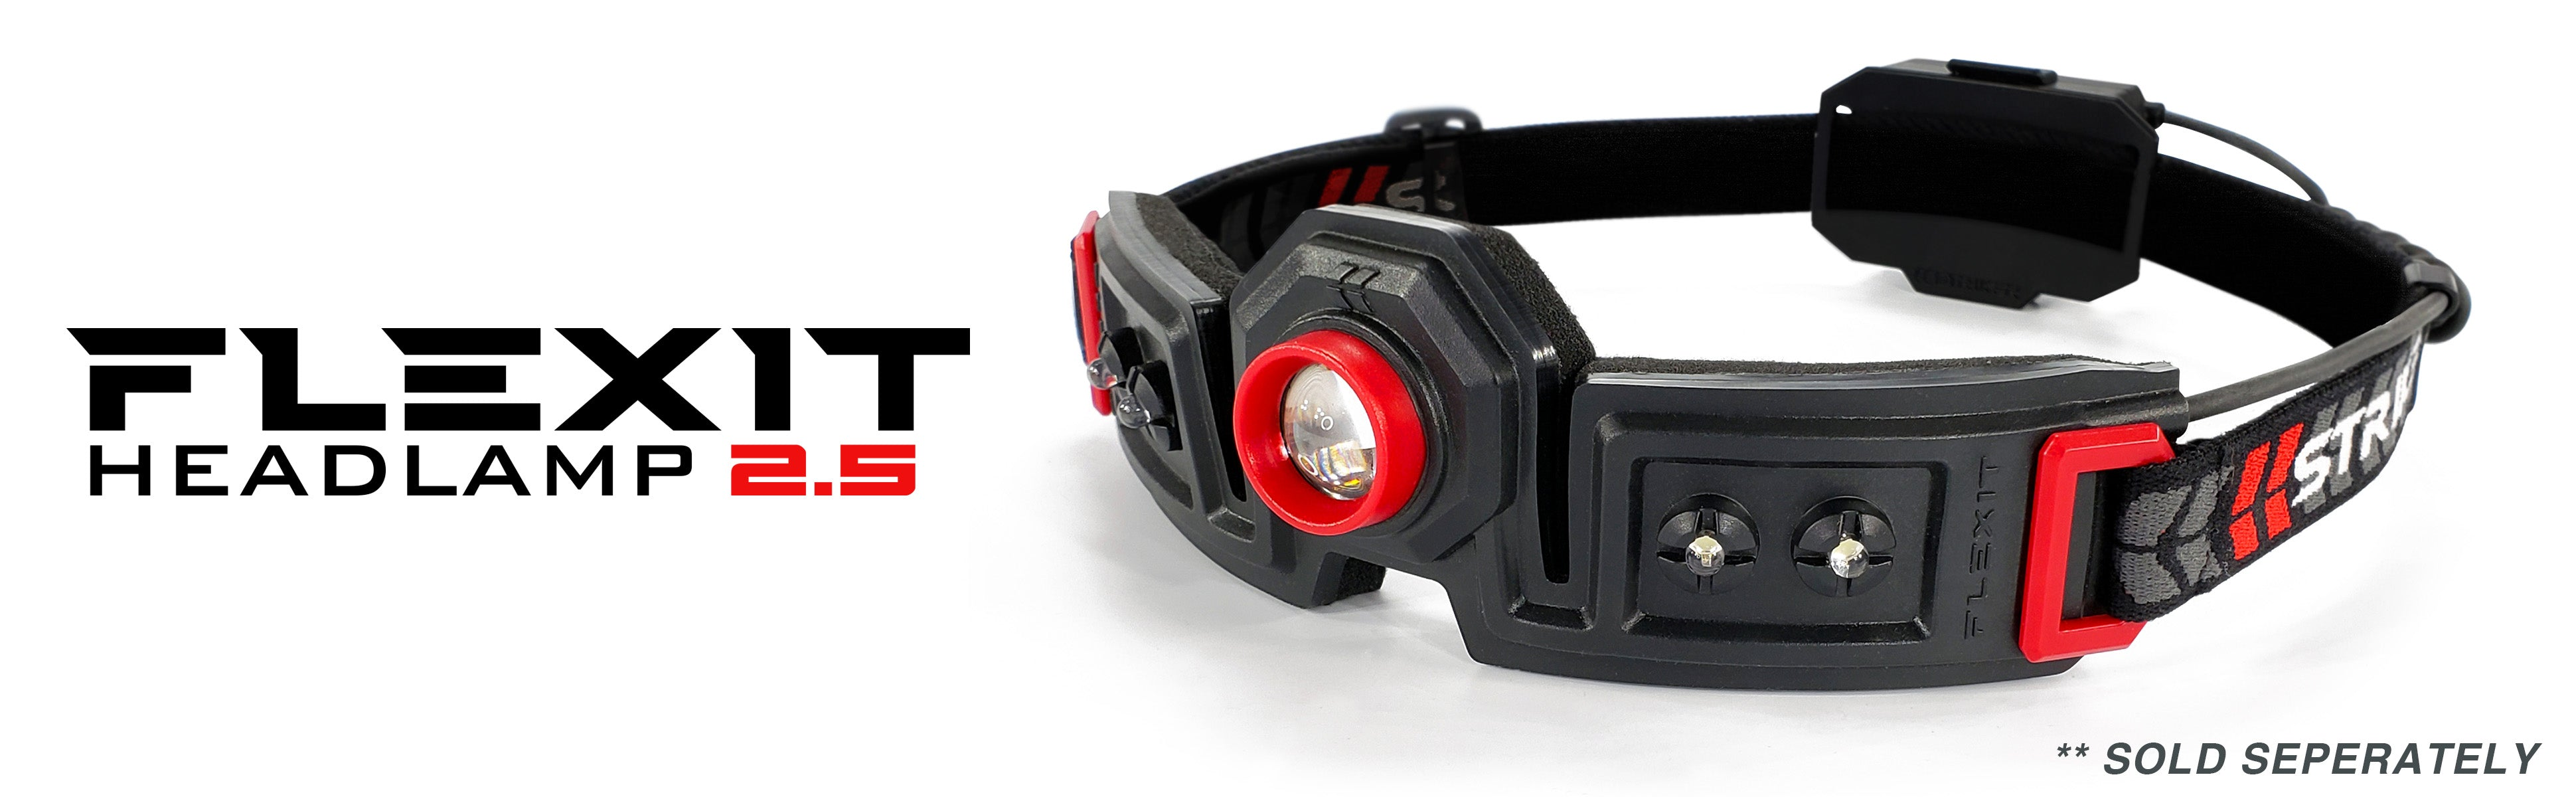 Striker FLEXIT Headlamp 2.5 - 180 degree halo lighting